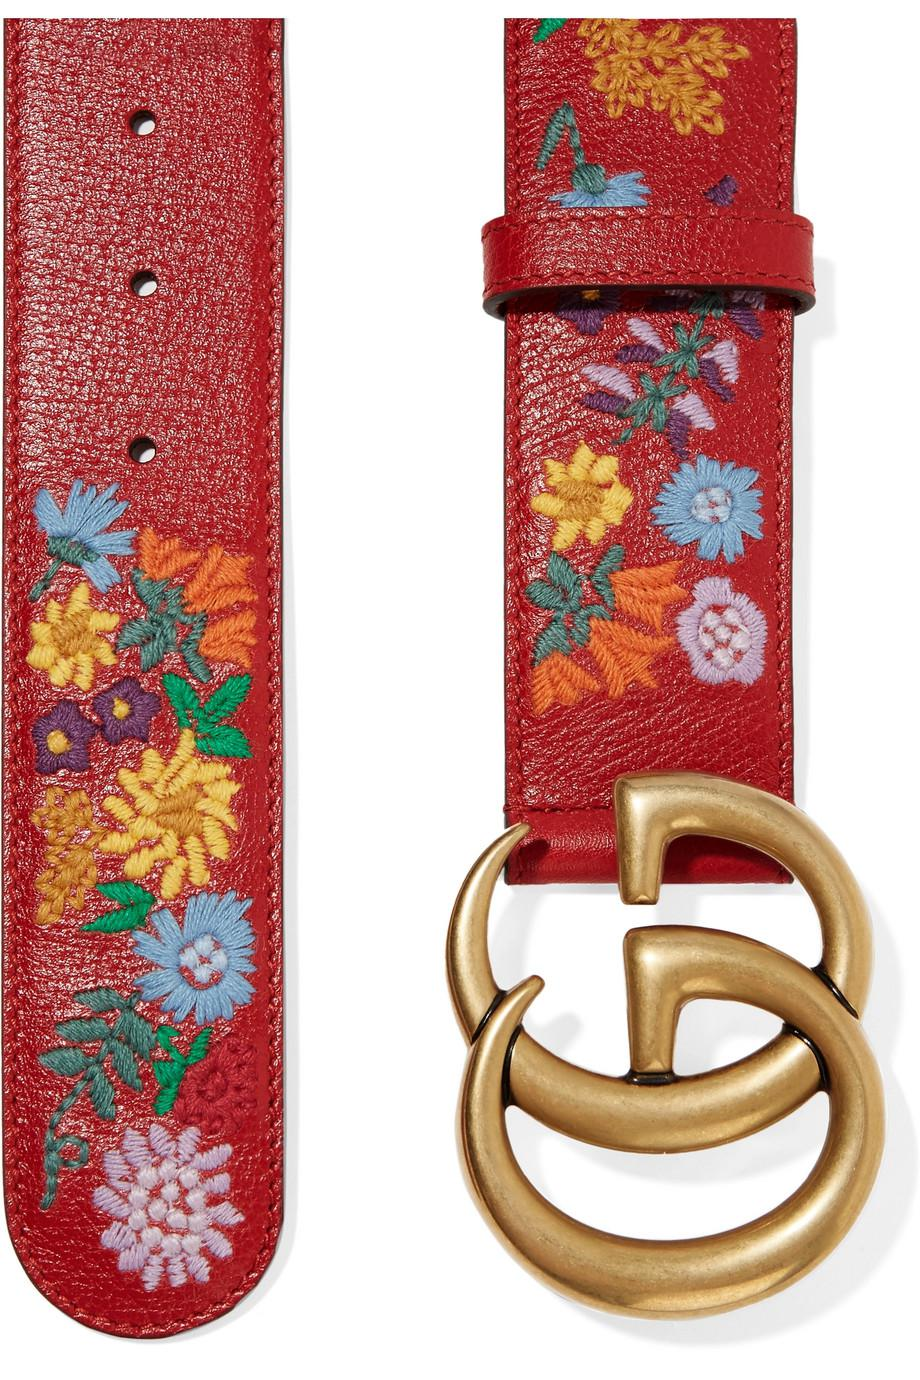 6d7e3daf8 Gucci Embroidered Textured-leather Belt in Red - Lyst